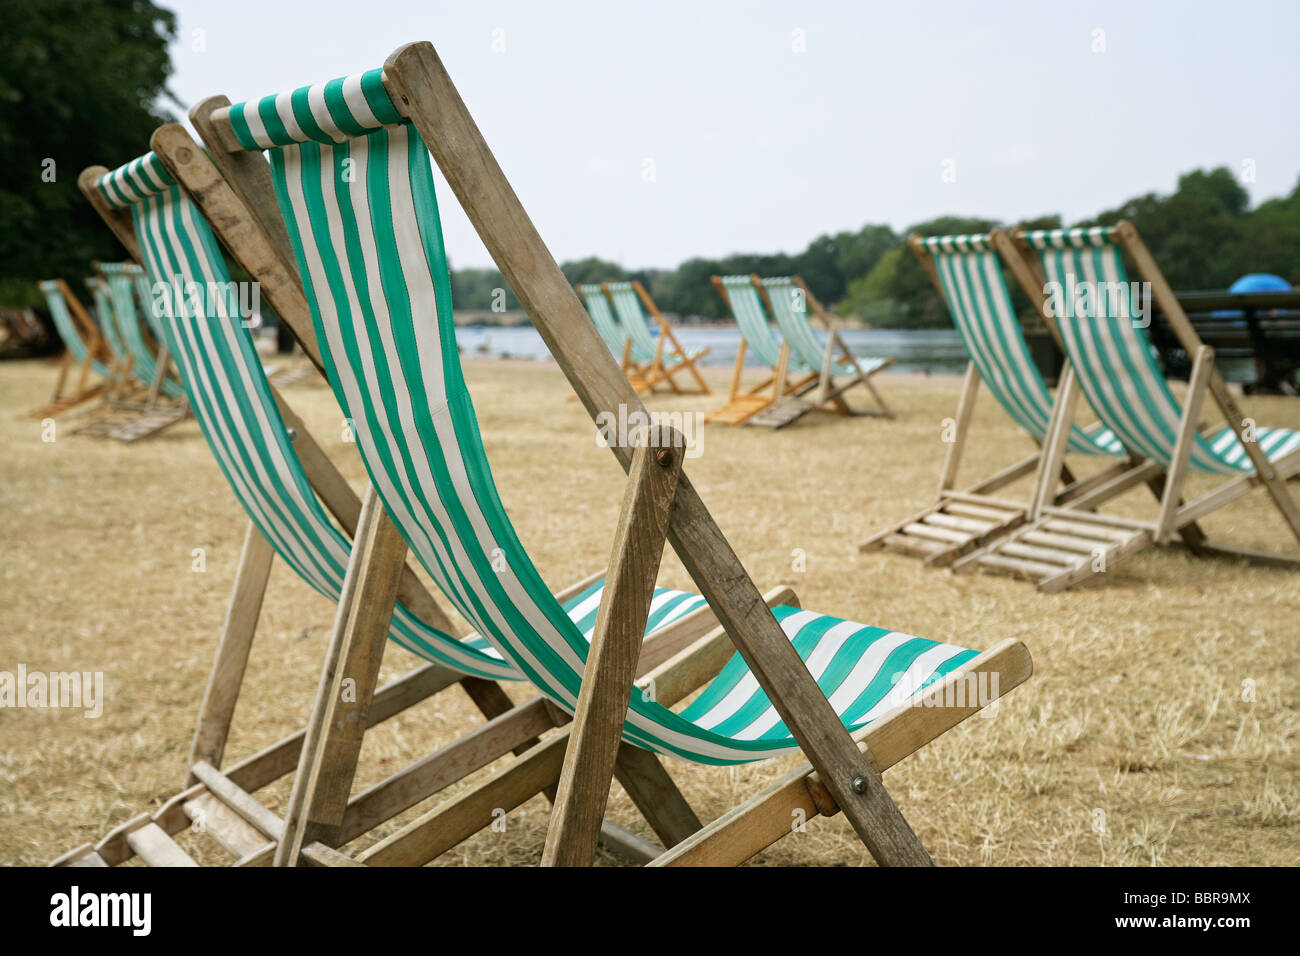 Empty deck chairs in the park on parched brown grass by a lake in the summer time - Stock Image